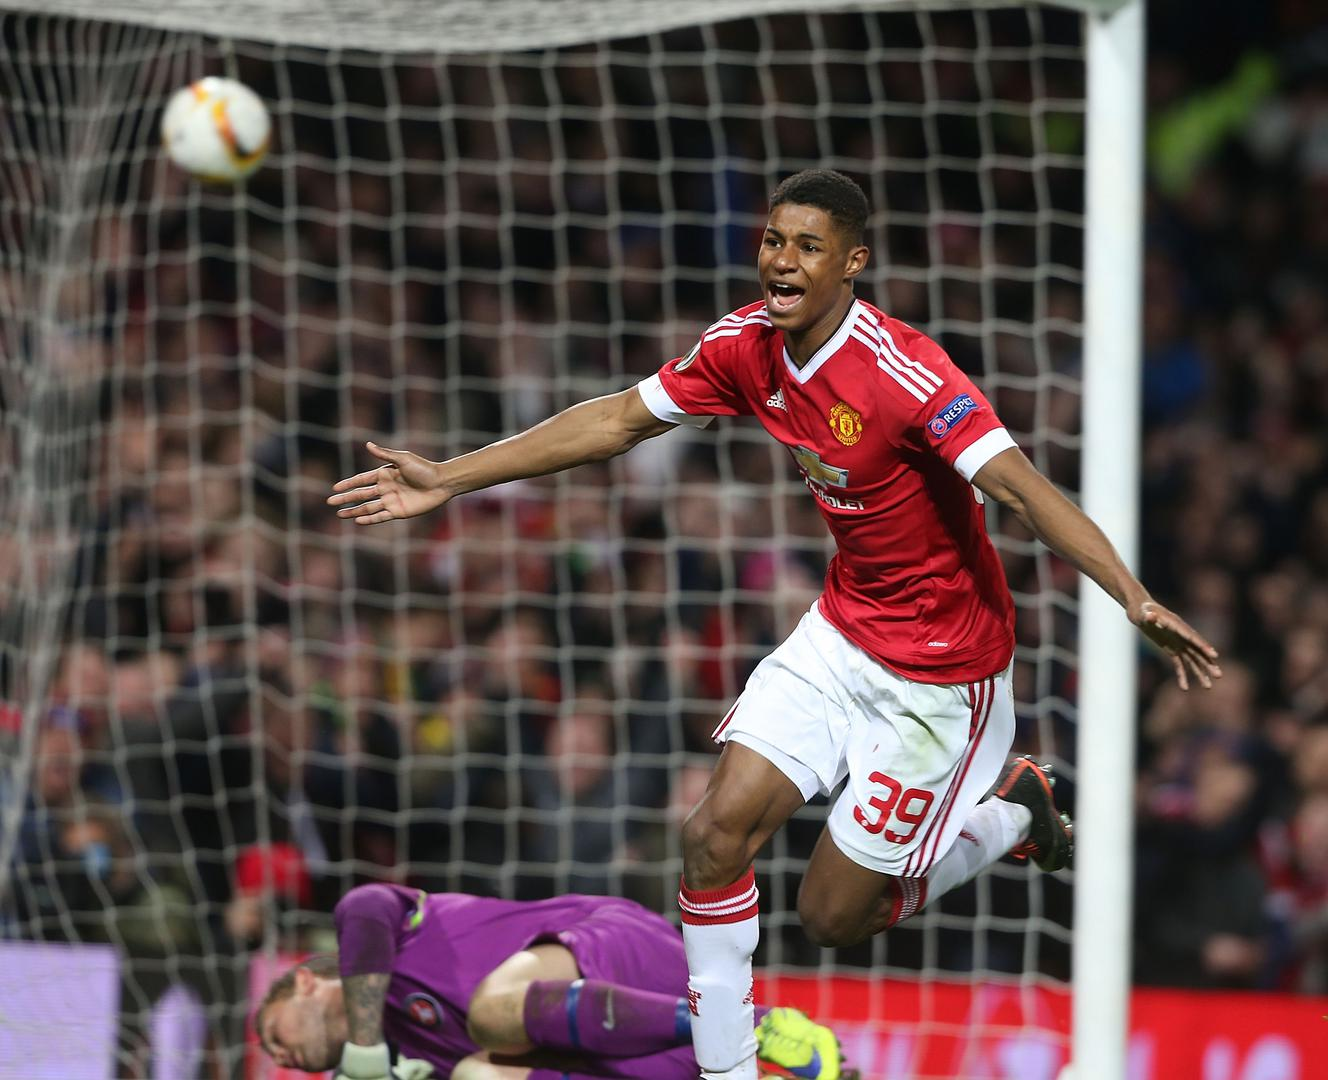 Marcus Rashford celebrates after scoring his first senior goal for Manchester United, against Fc Midtjylland